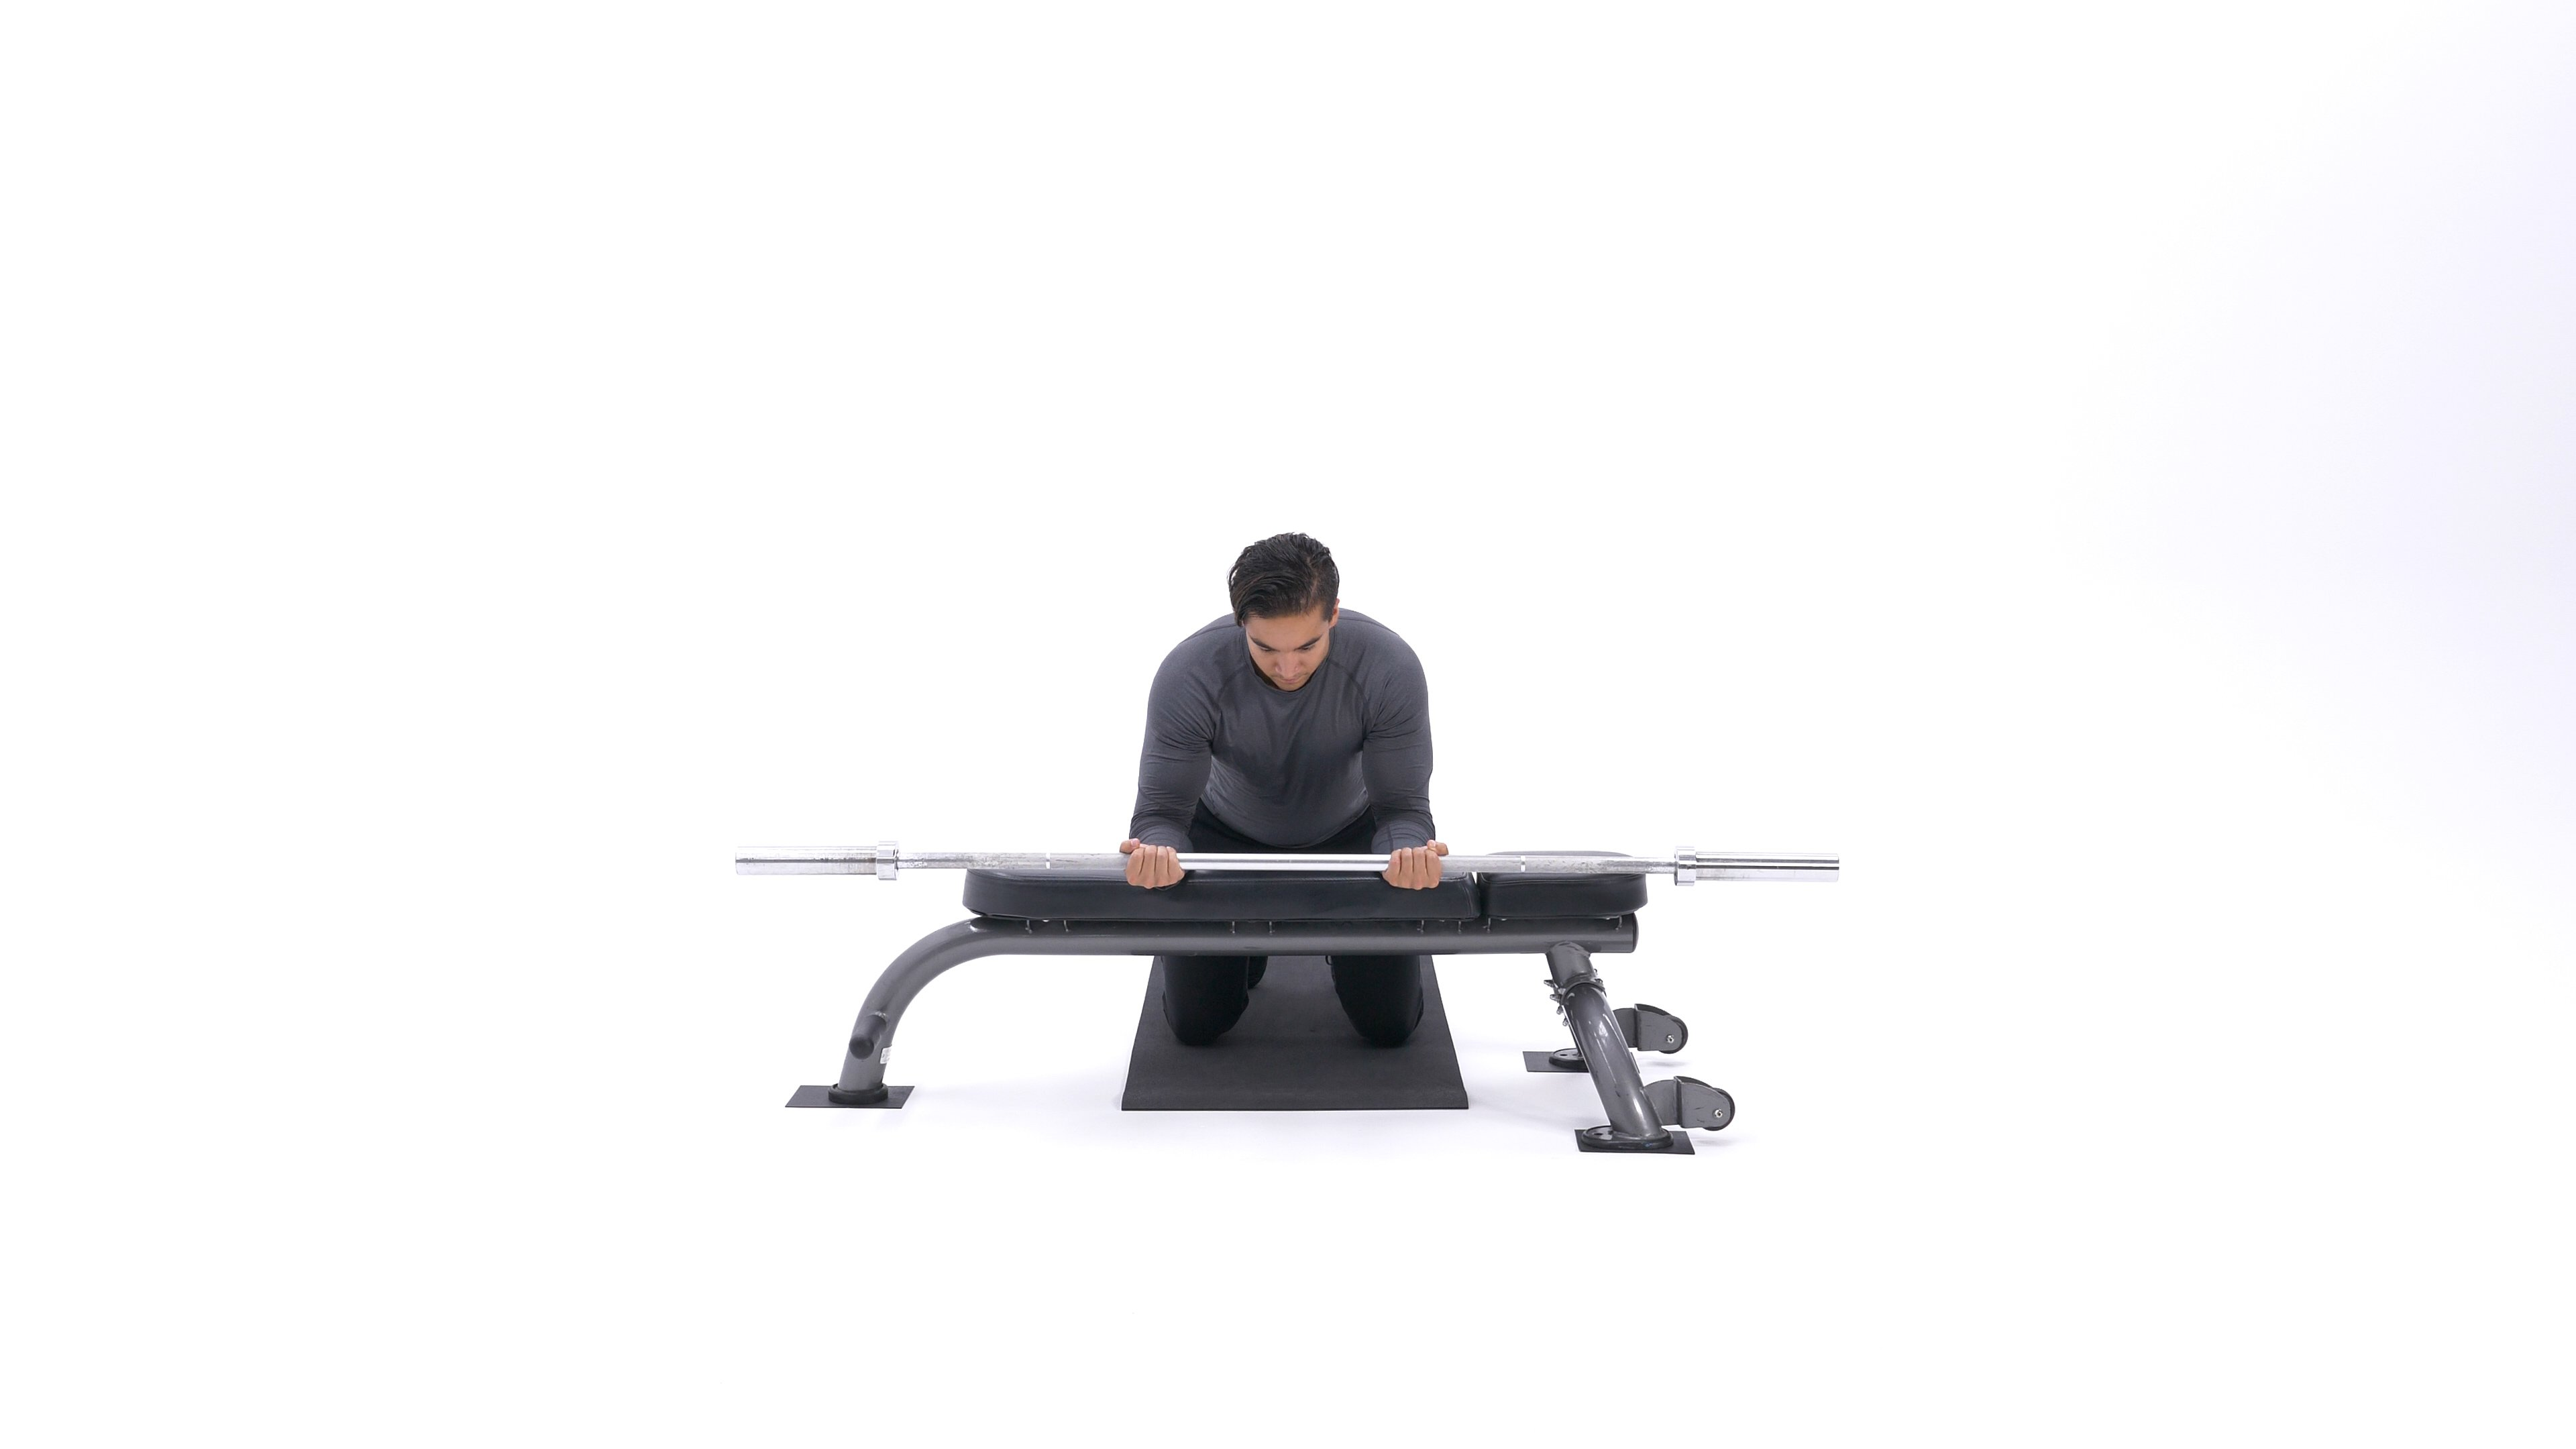 Palms-up wrist curl over bench image